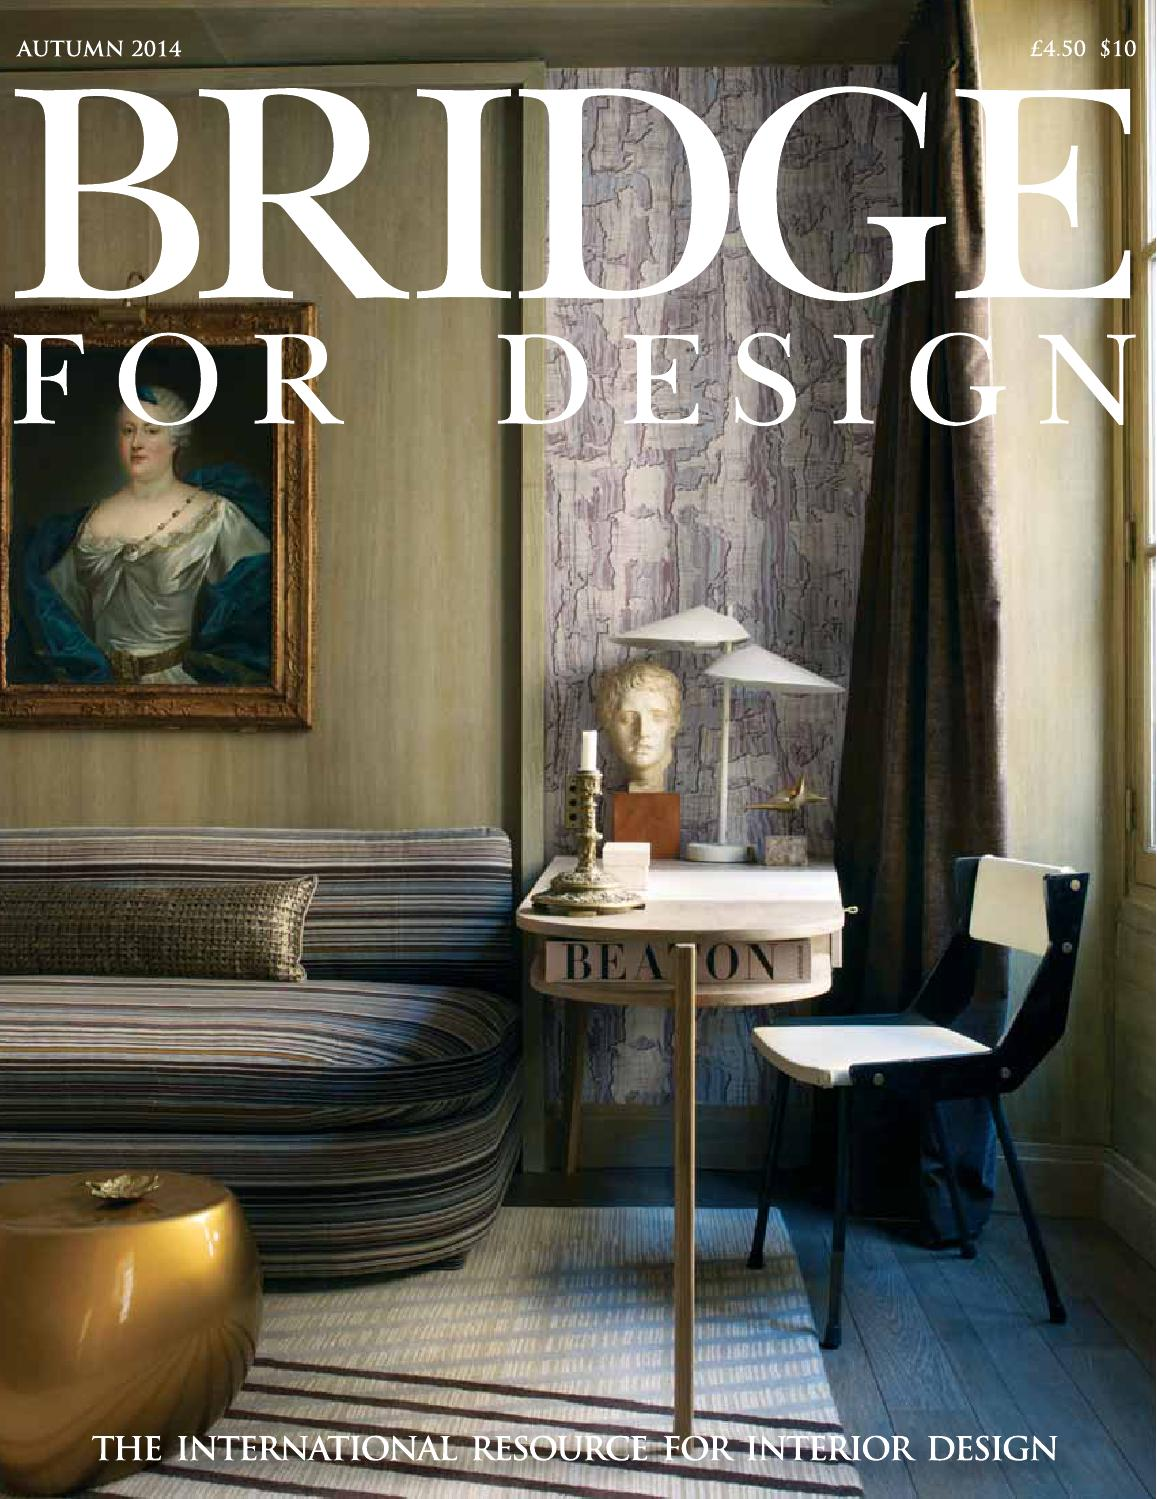 Interio Sofa Thierry Bridge For Design Autumn 2014